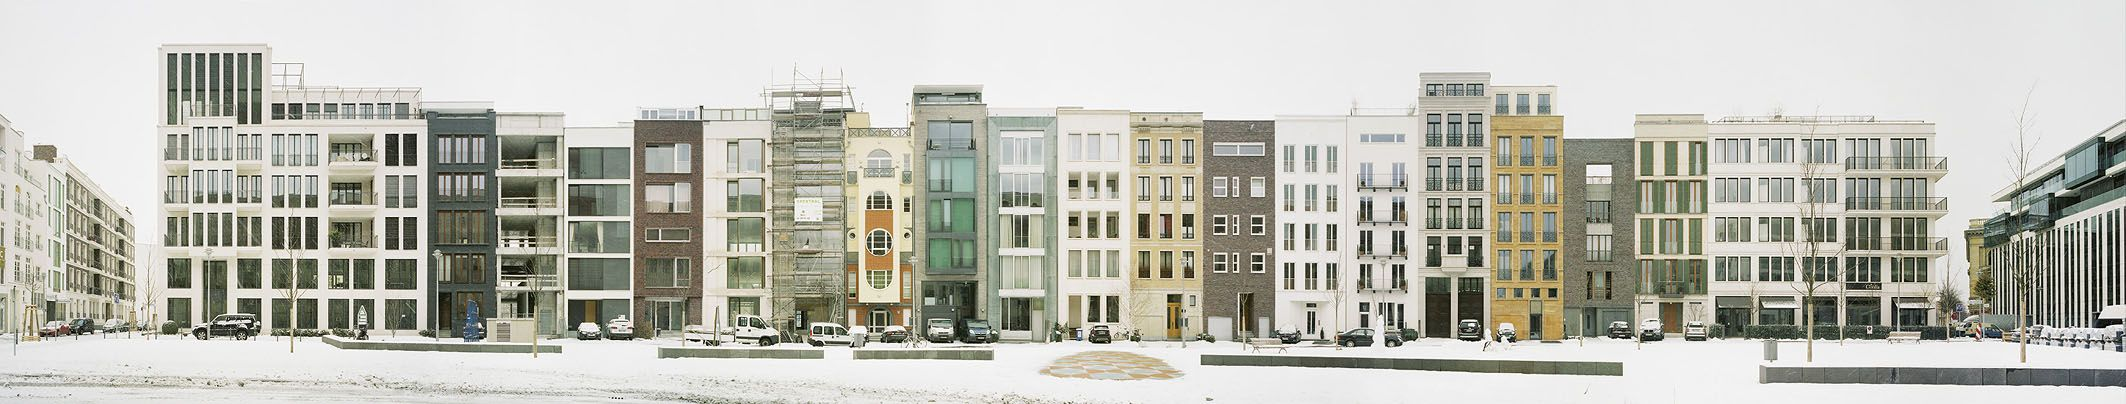 Townhouse Berlin berlin townhouses architecture townhouse and